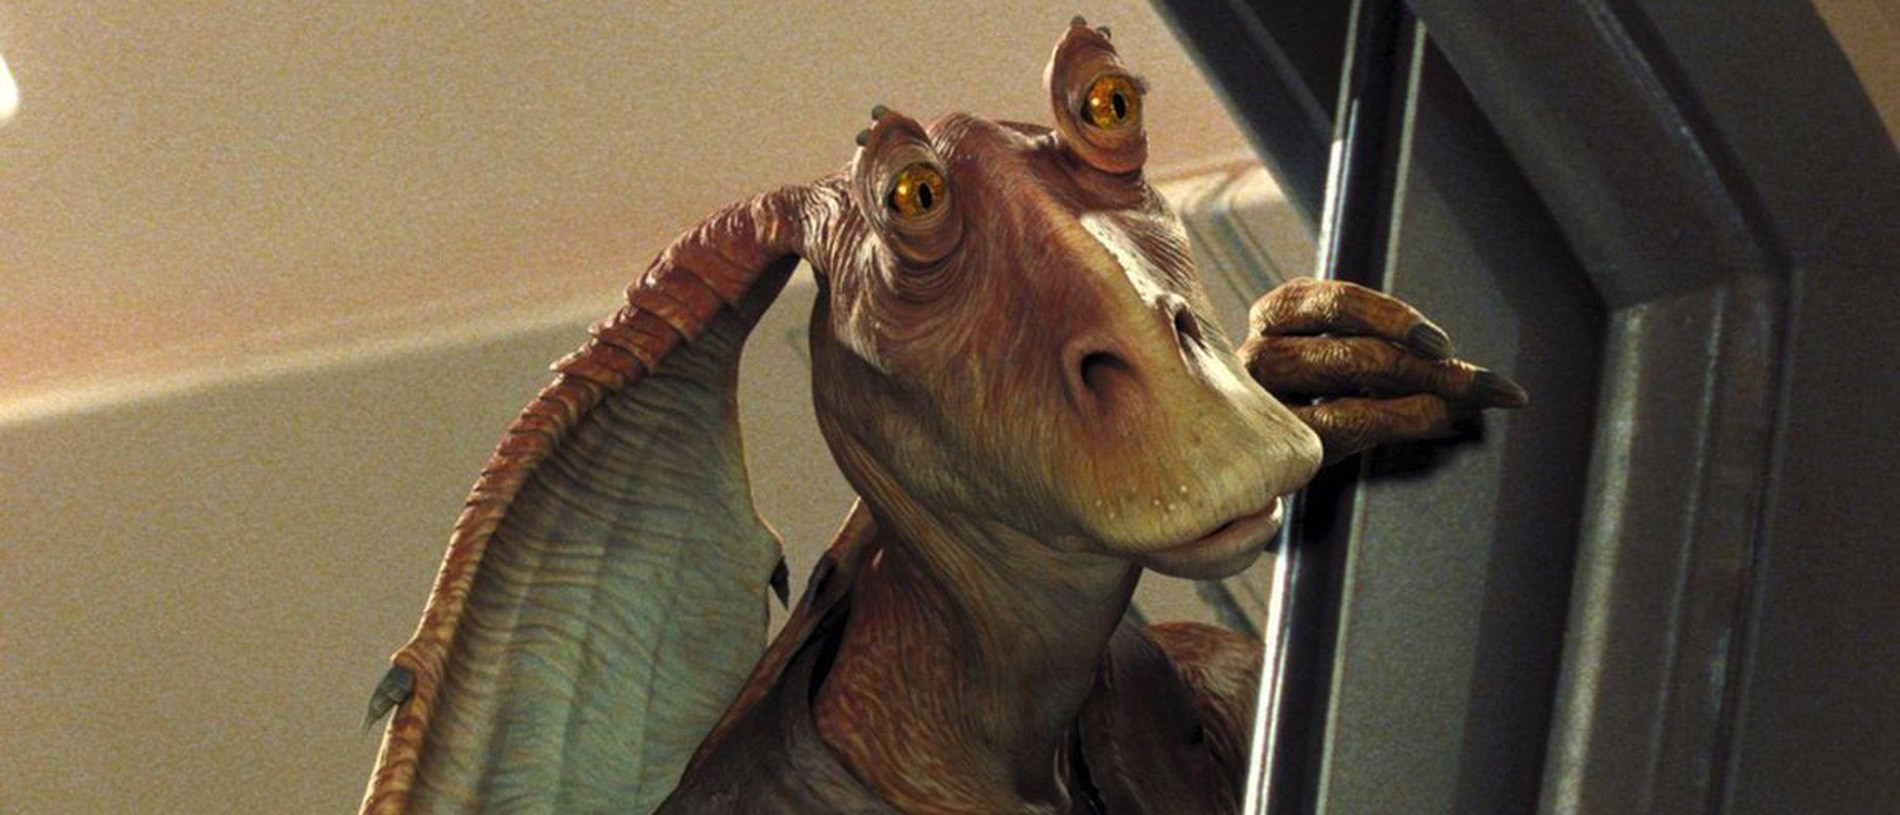 Jar-Jar-Binks-Kenobi-Disney-Plus